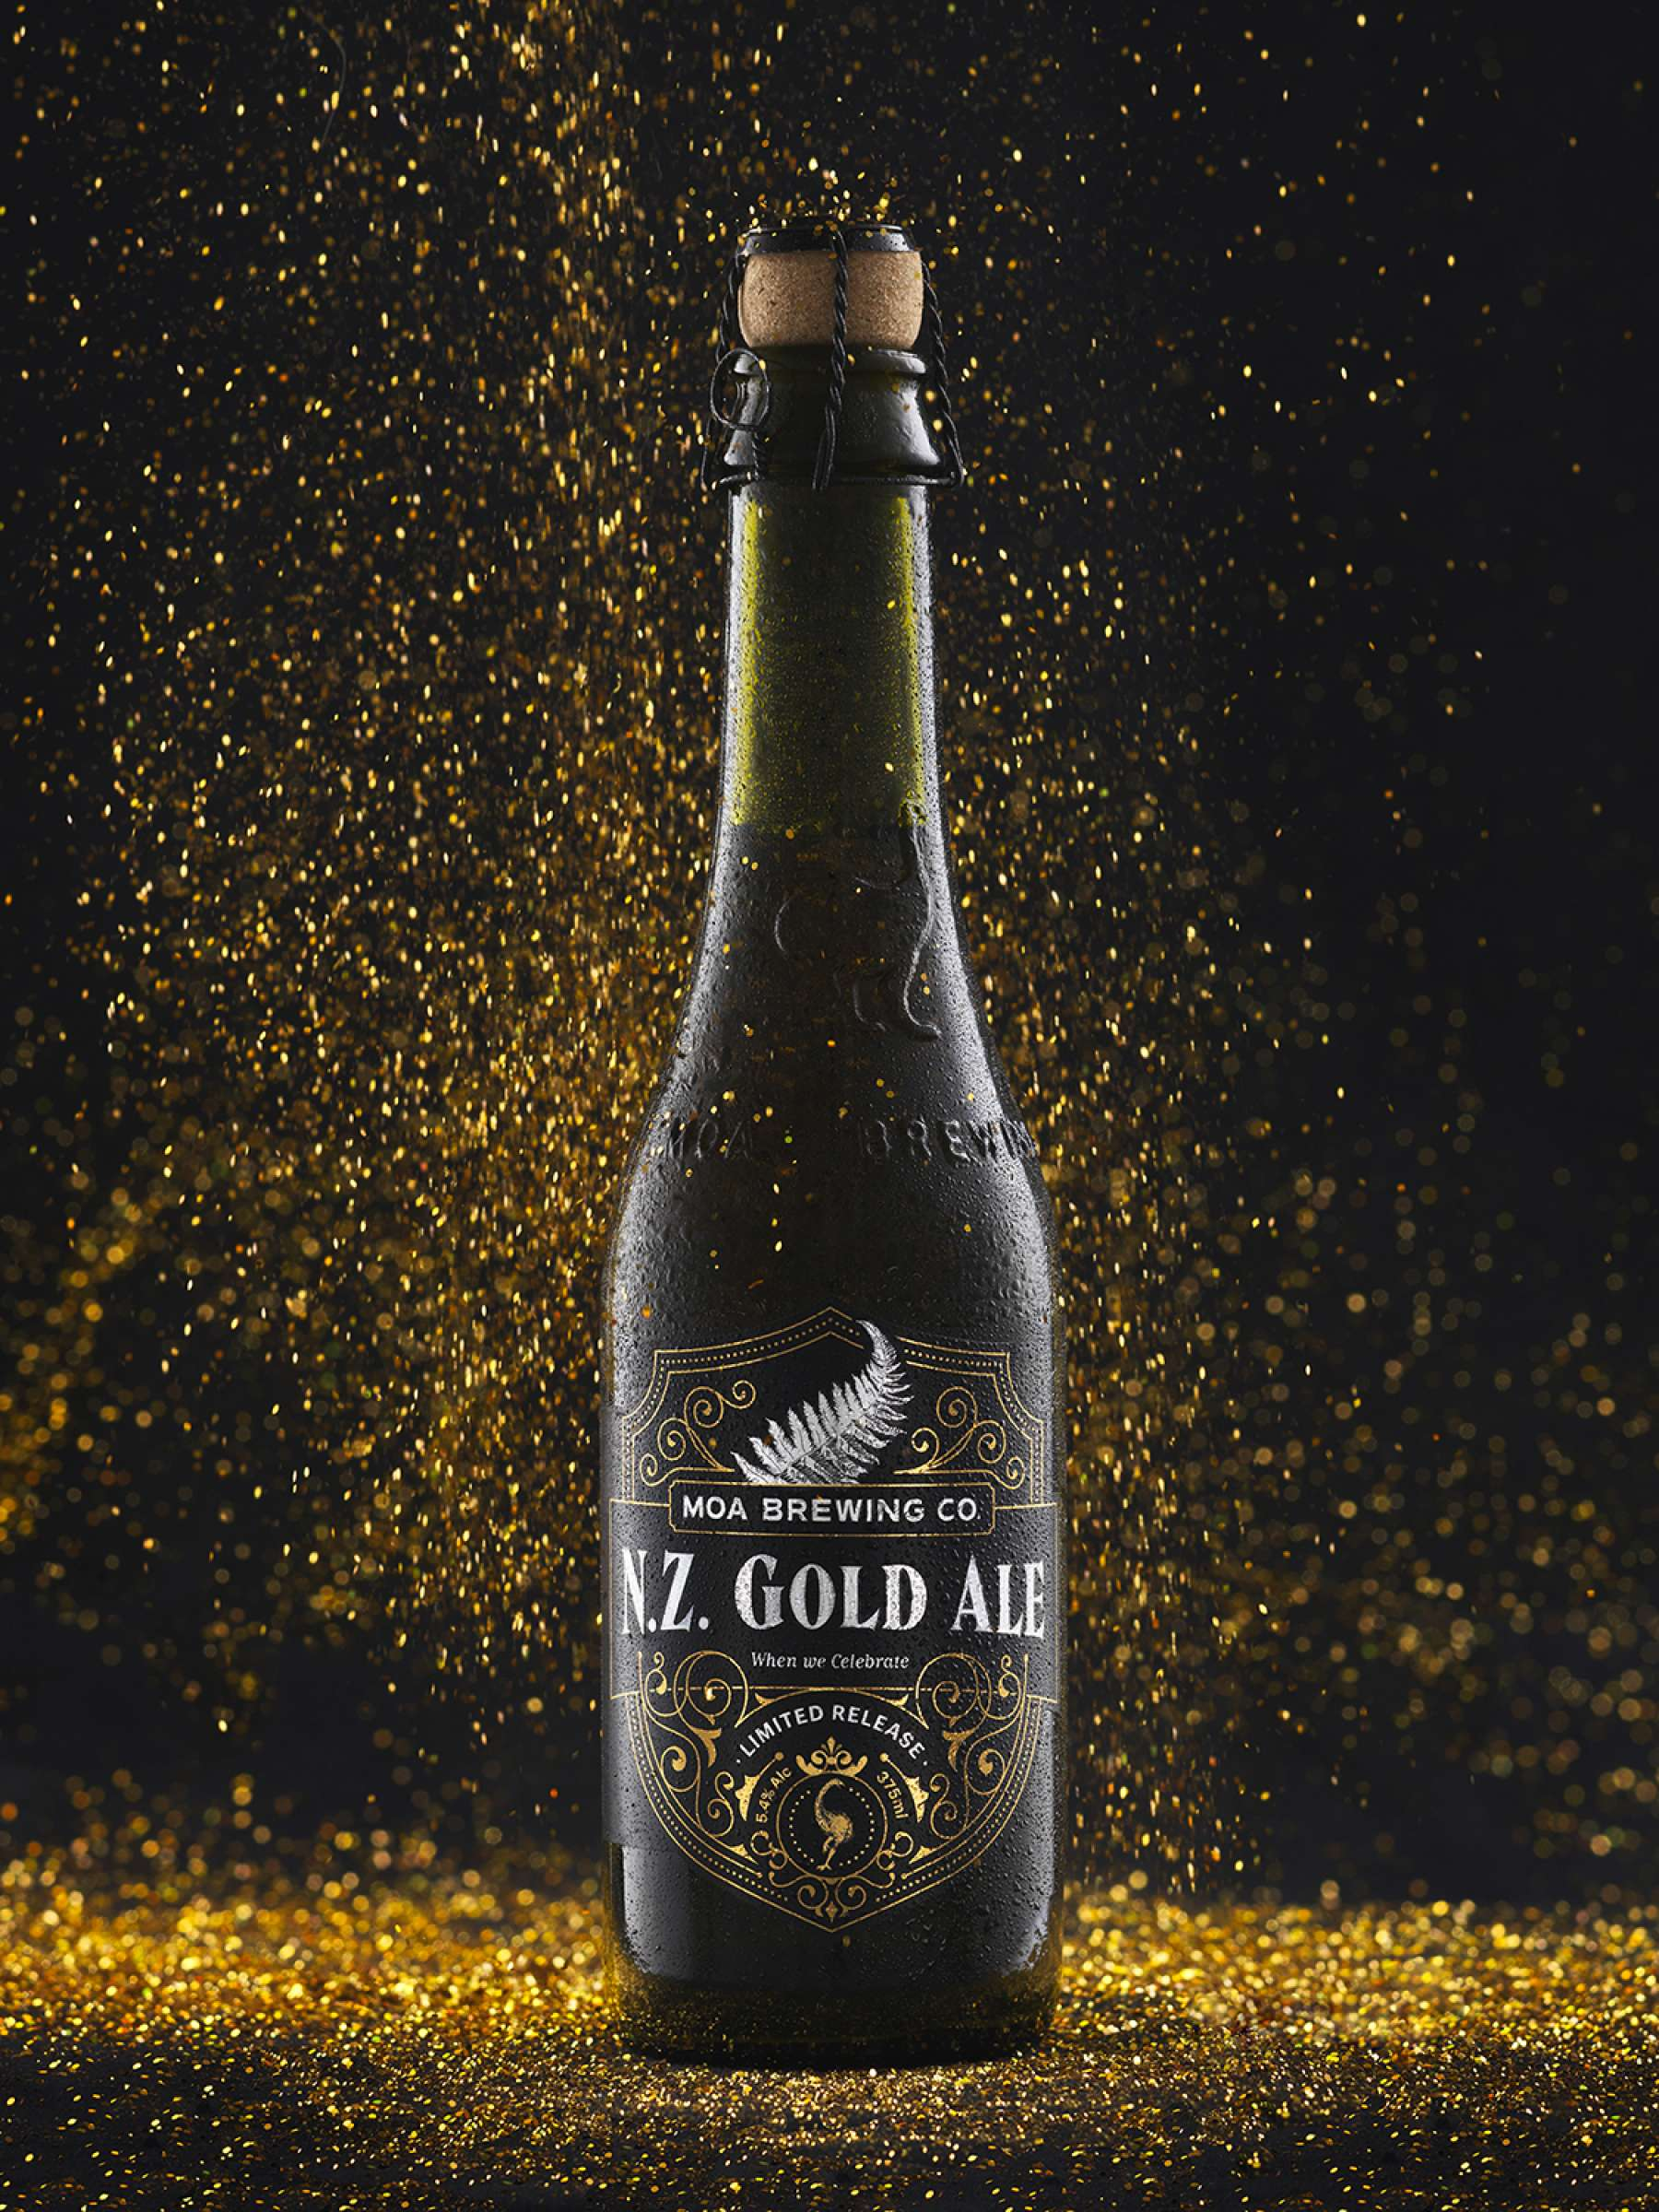 Moa Beer - NZ Gold Ale